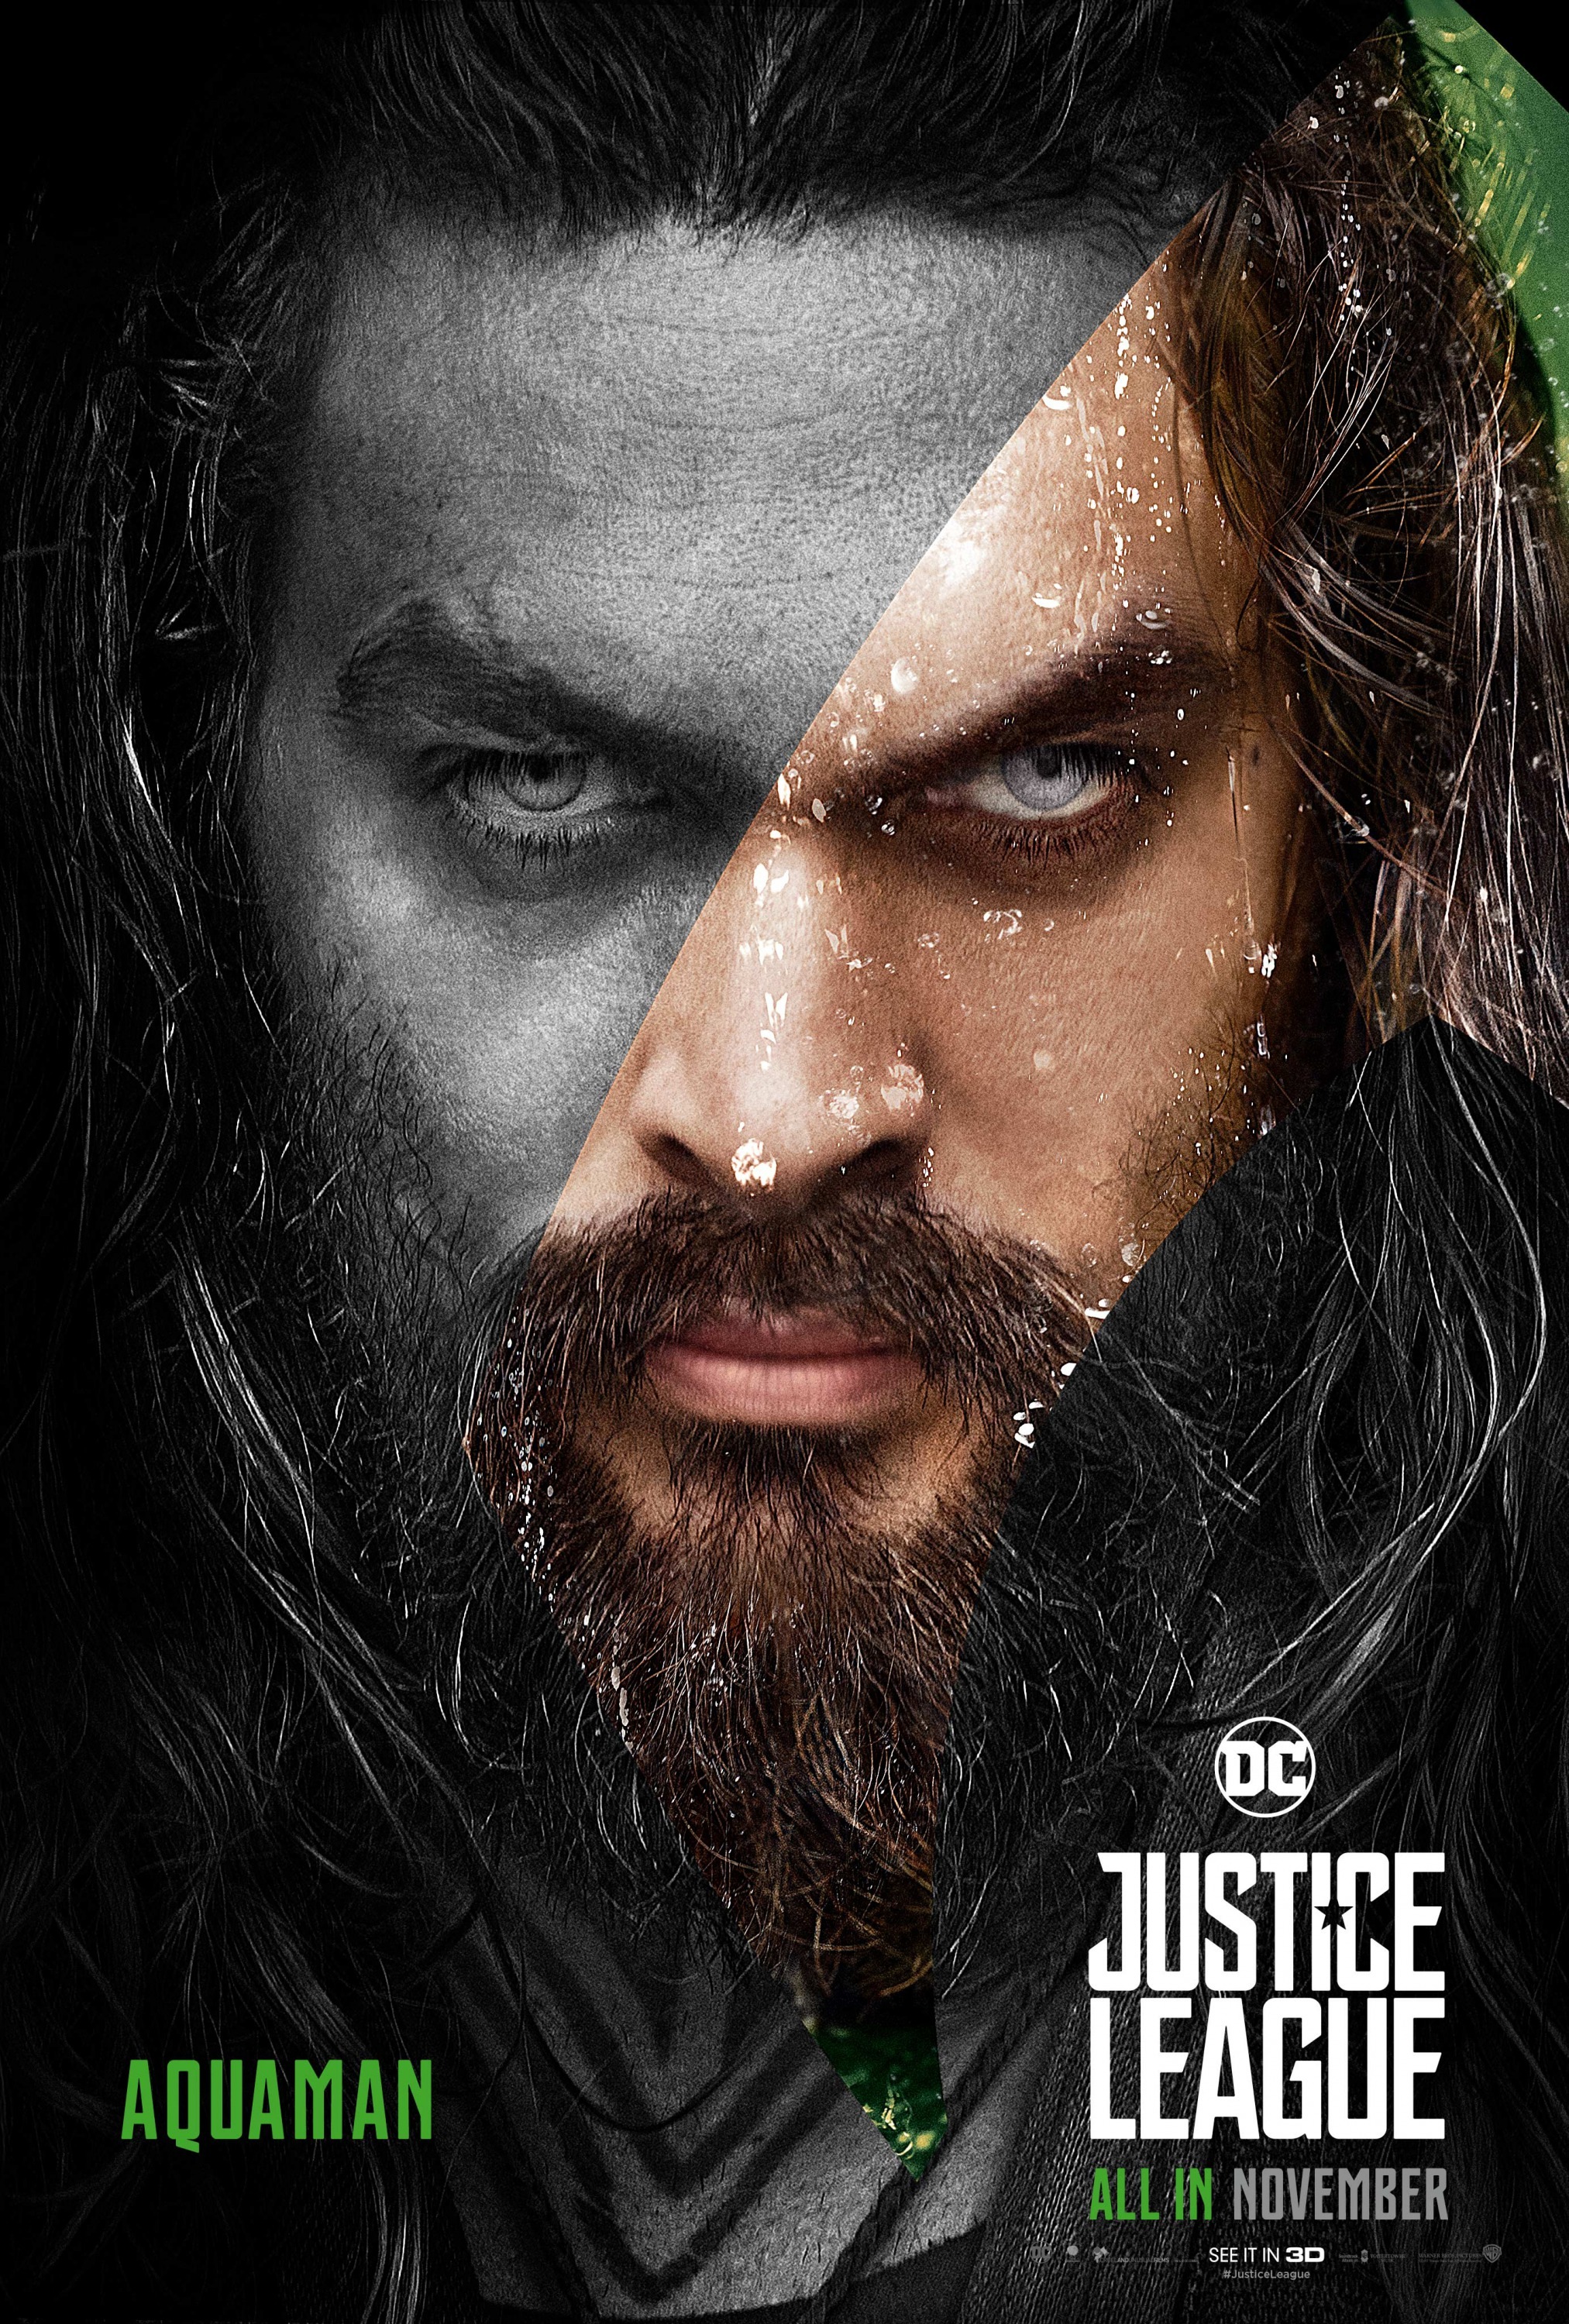 Justice League (2017) Poster - Aquaman